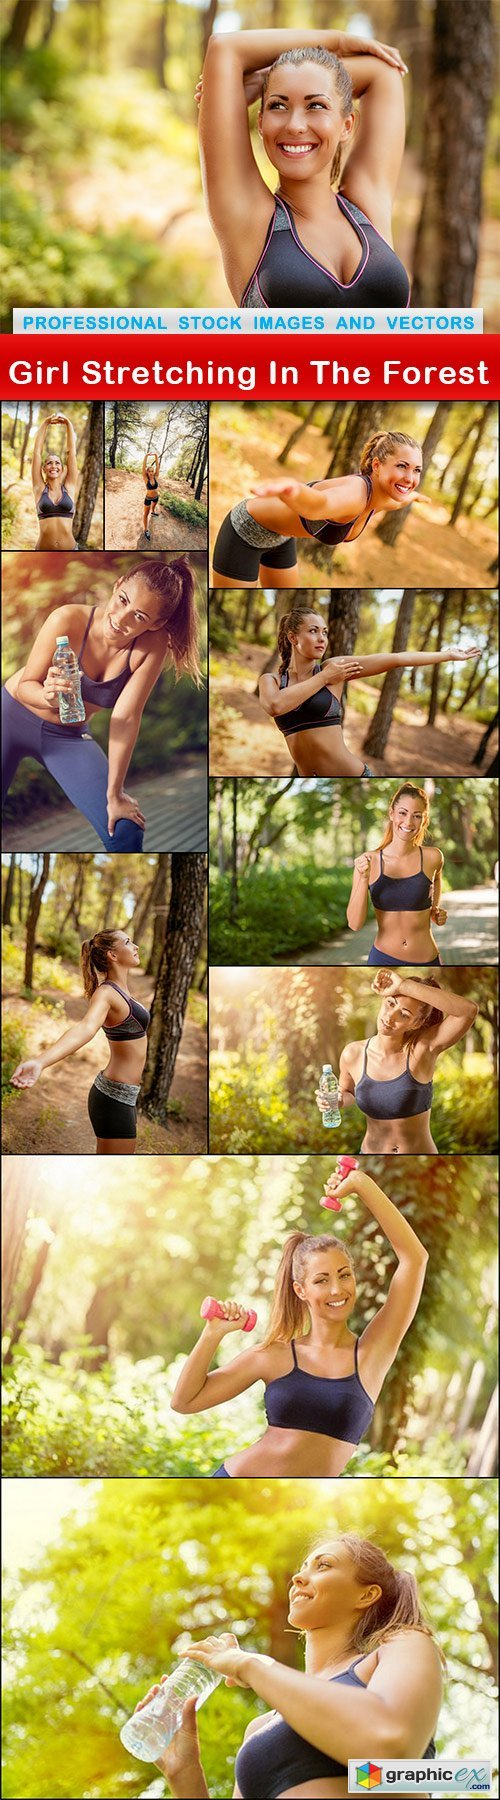 Girl Stretching In The Forest - 11 UHQ JPEG